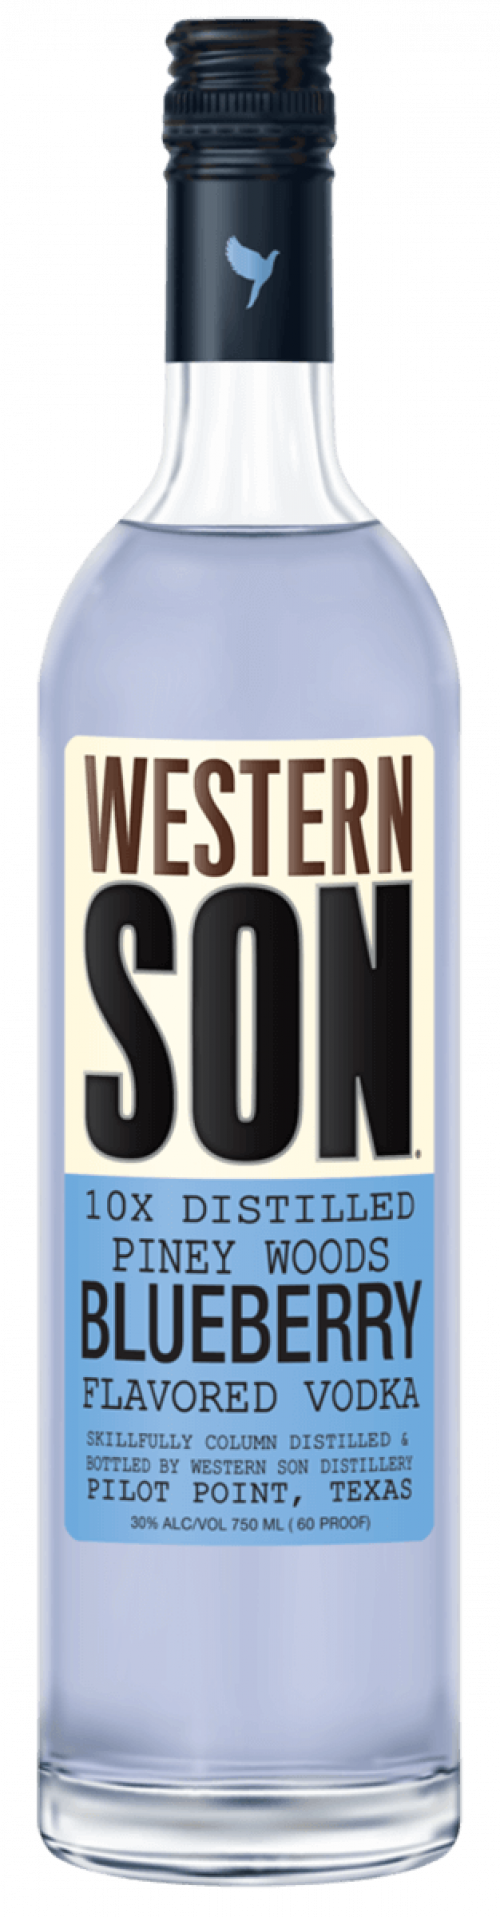 Western Son Blueberry Vodka 1L